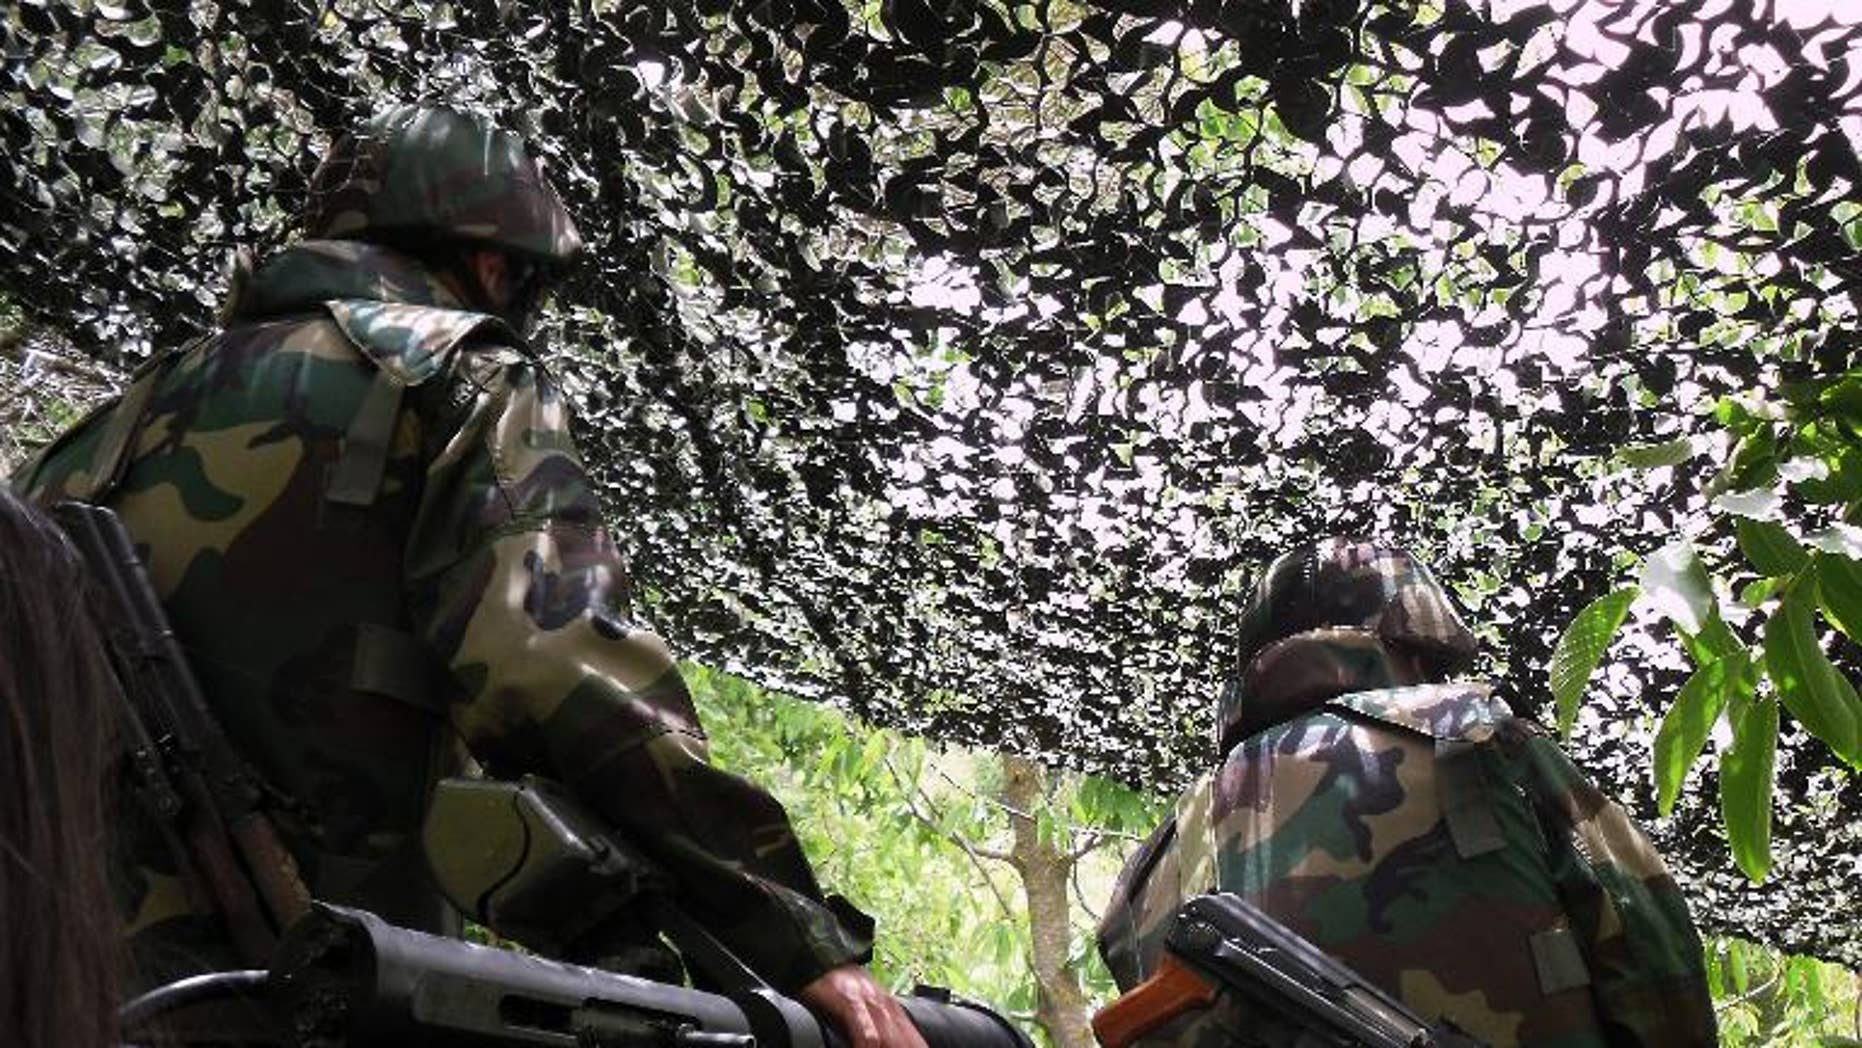 Lebanese Hezbollah militants stand in their post in Iqlim al-Touffah, southern Lebanon on May 16, 2010